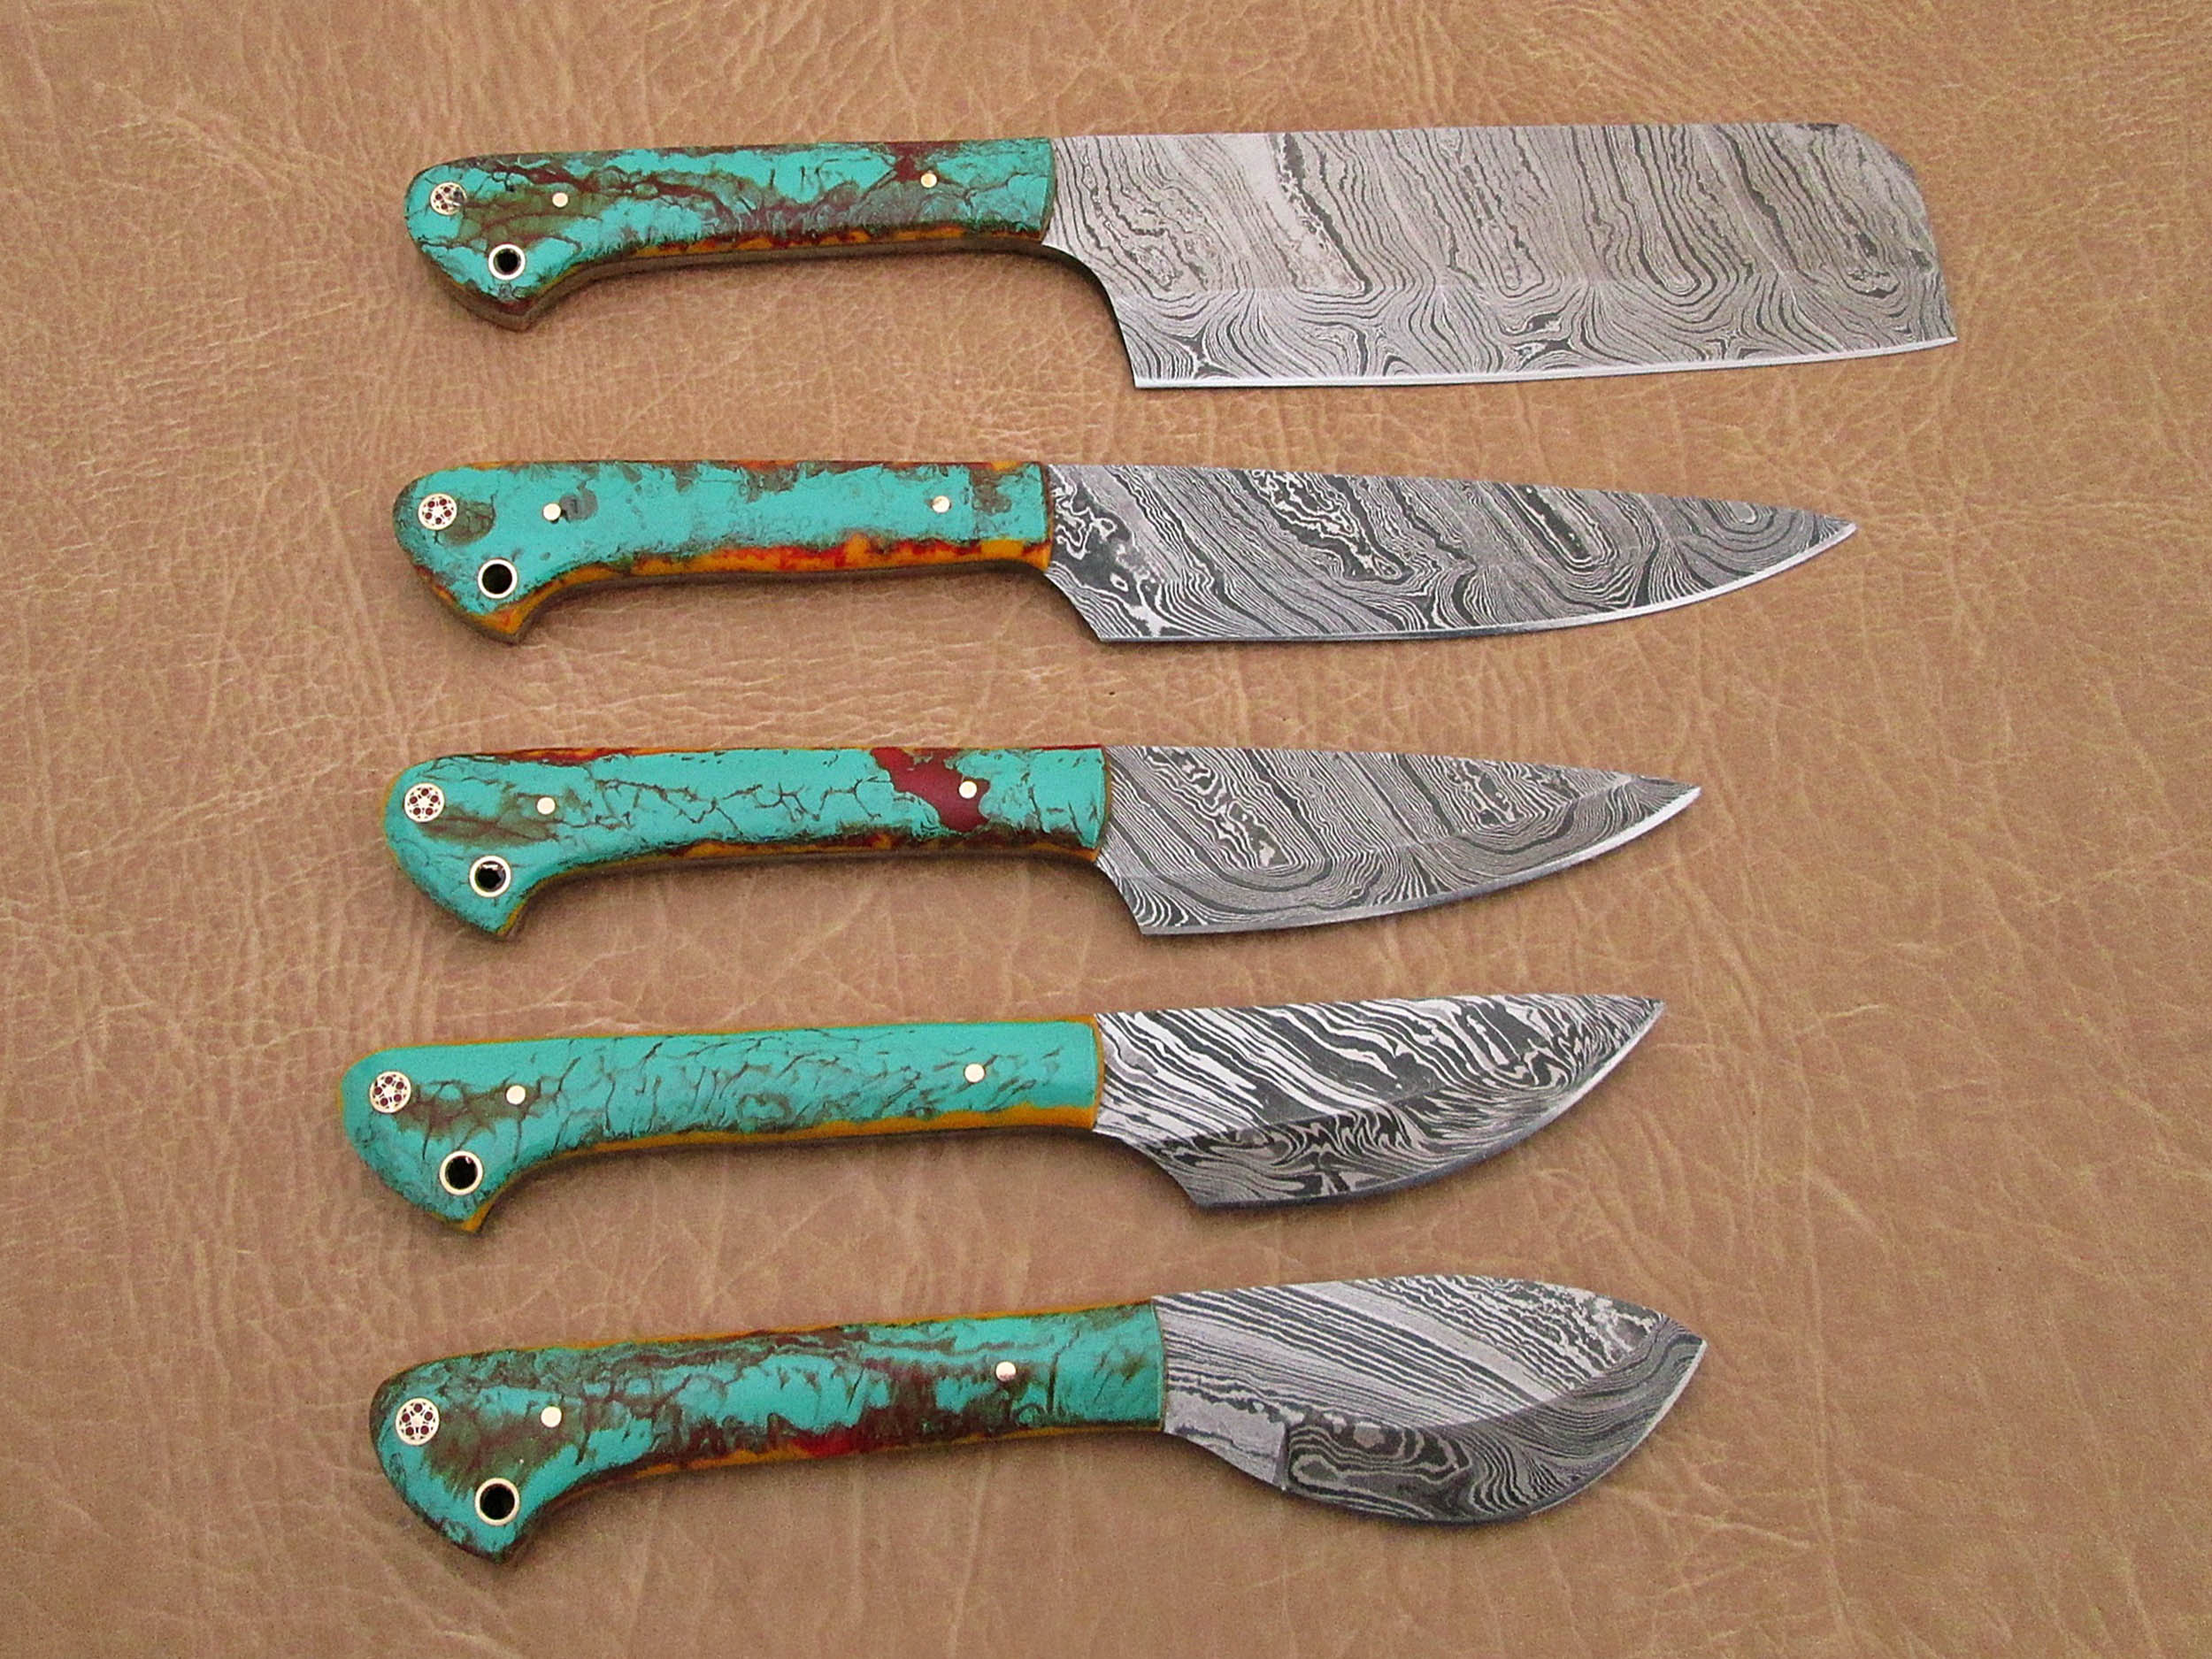 5 Pieces Damascus Steel Kitchen Knife Set Includes 10 6 9 6 9 0 8 0 7 6 Knives Multi Color Sea Green Scale Comes With Gift Box